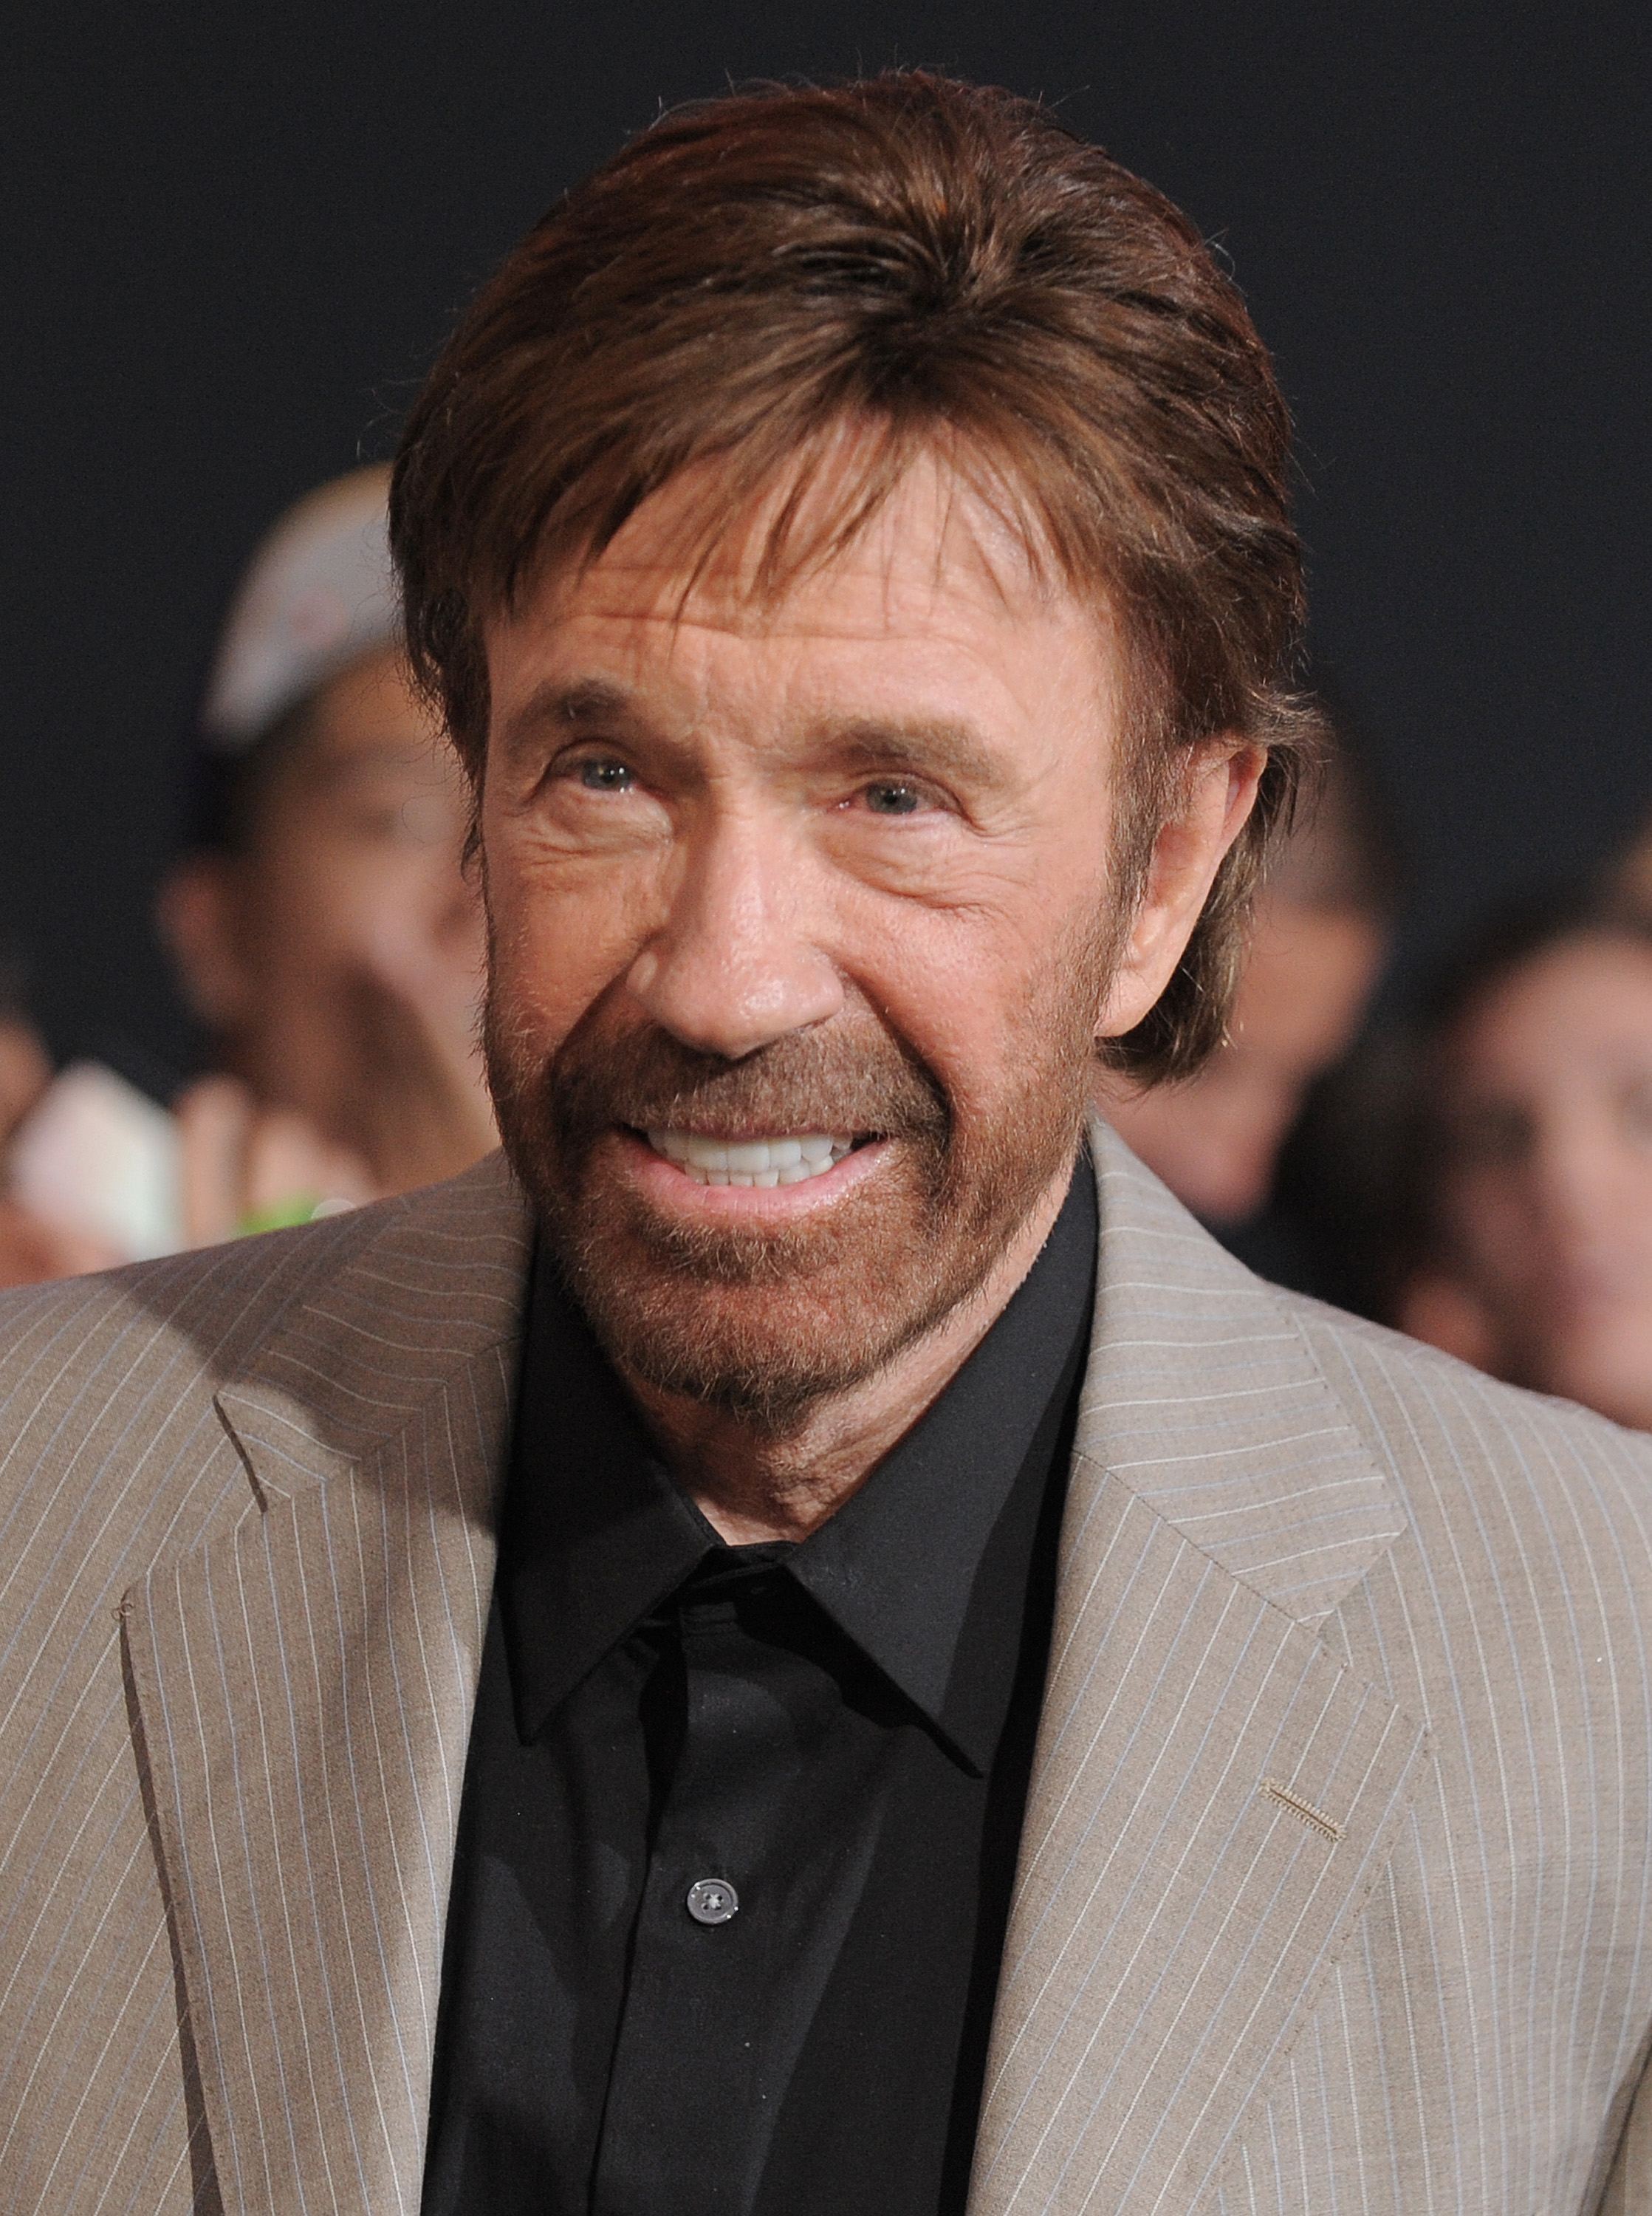 Chuck Norris weighs in...